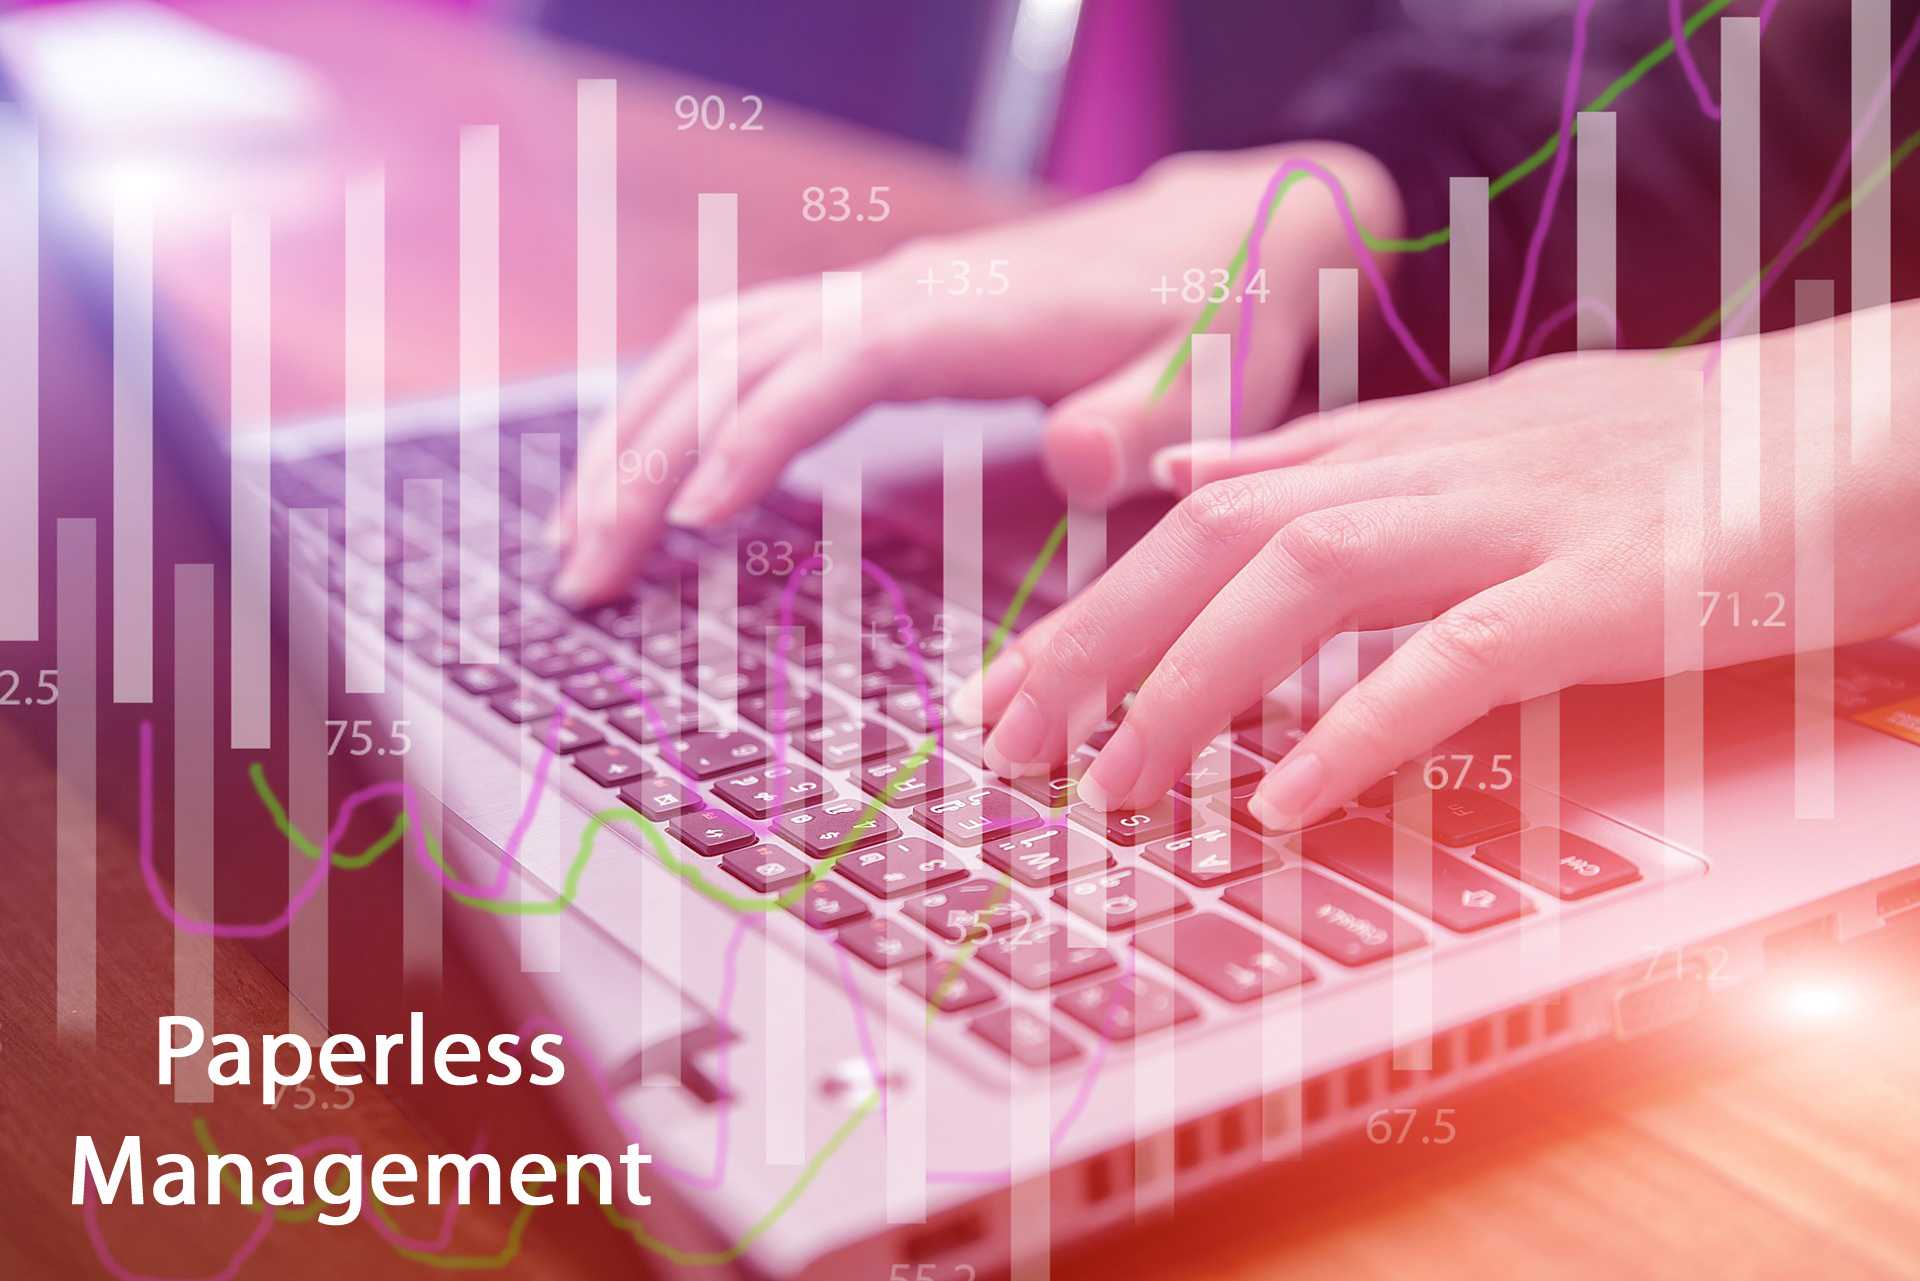 Paperless Management